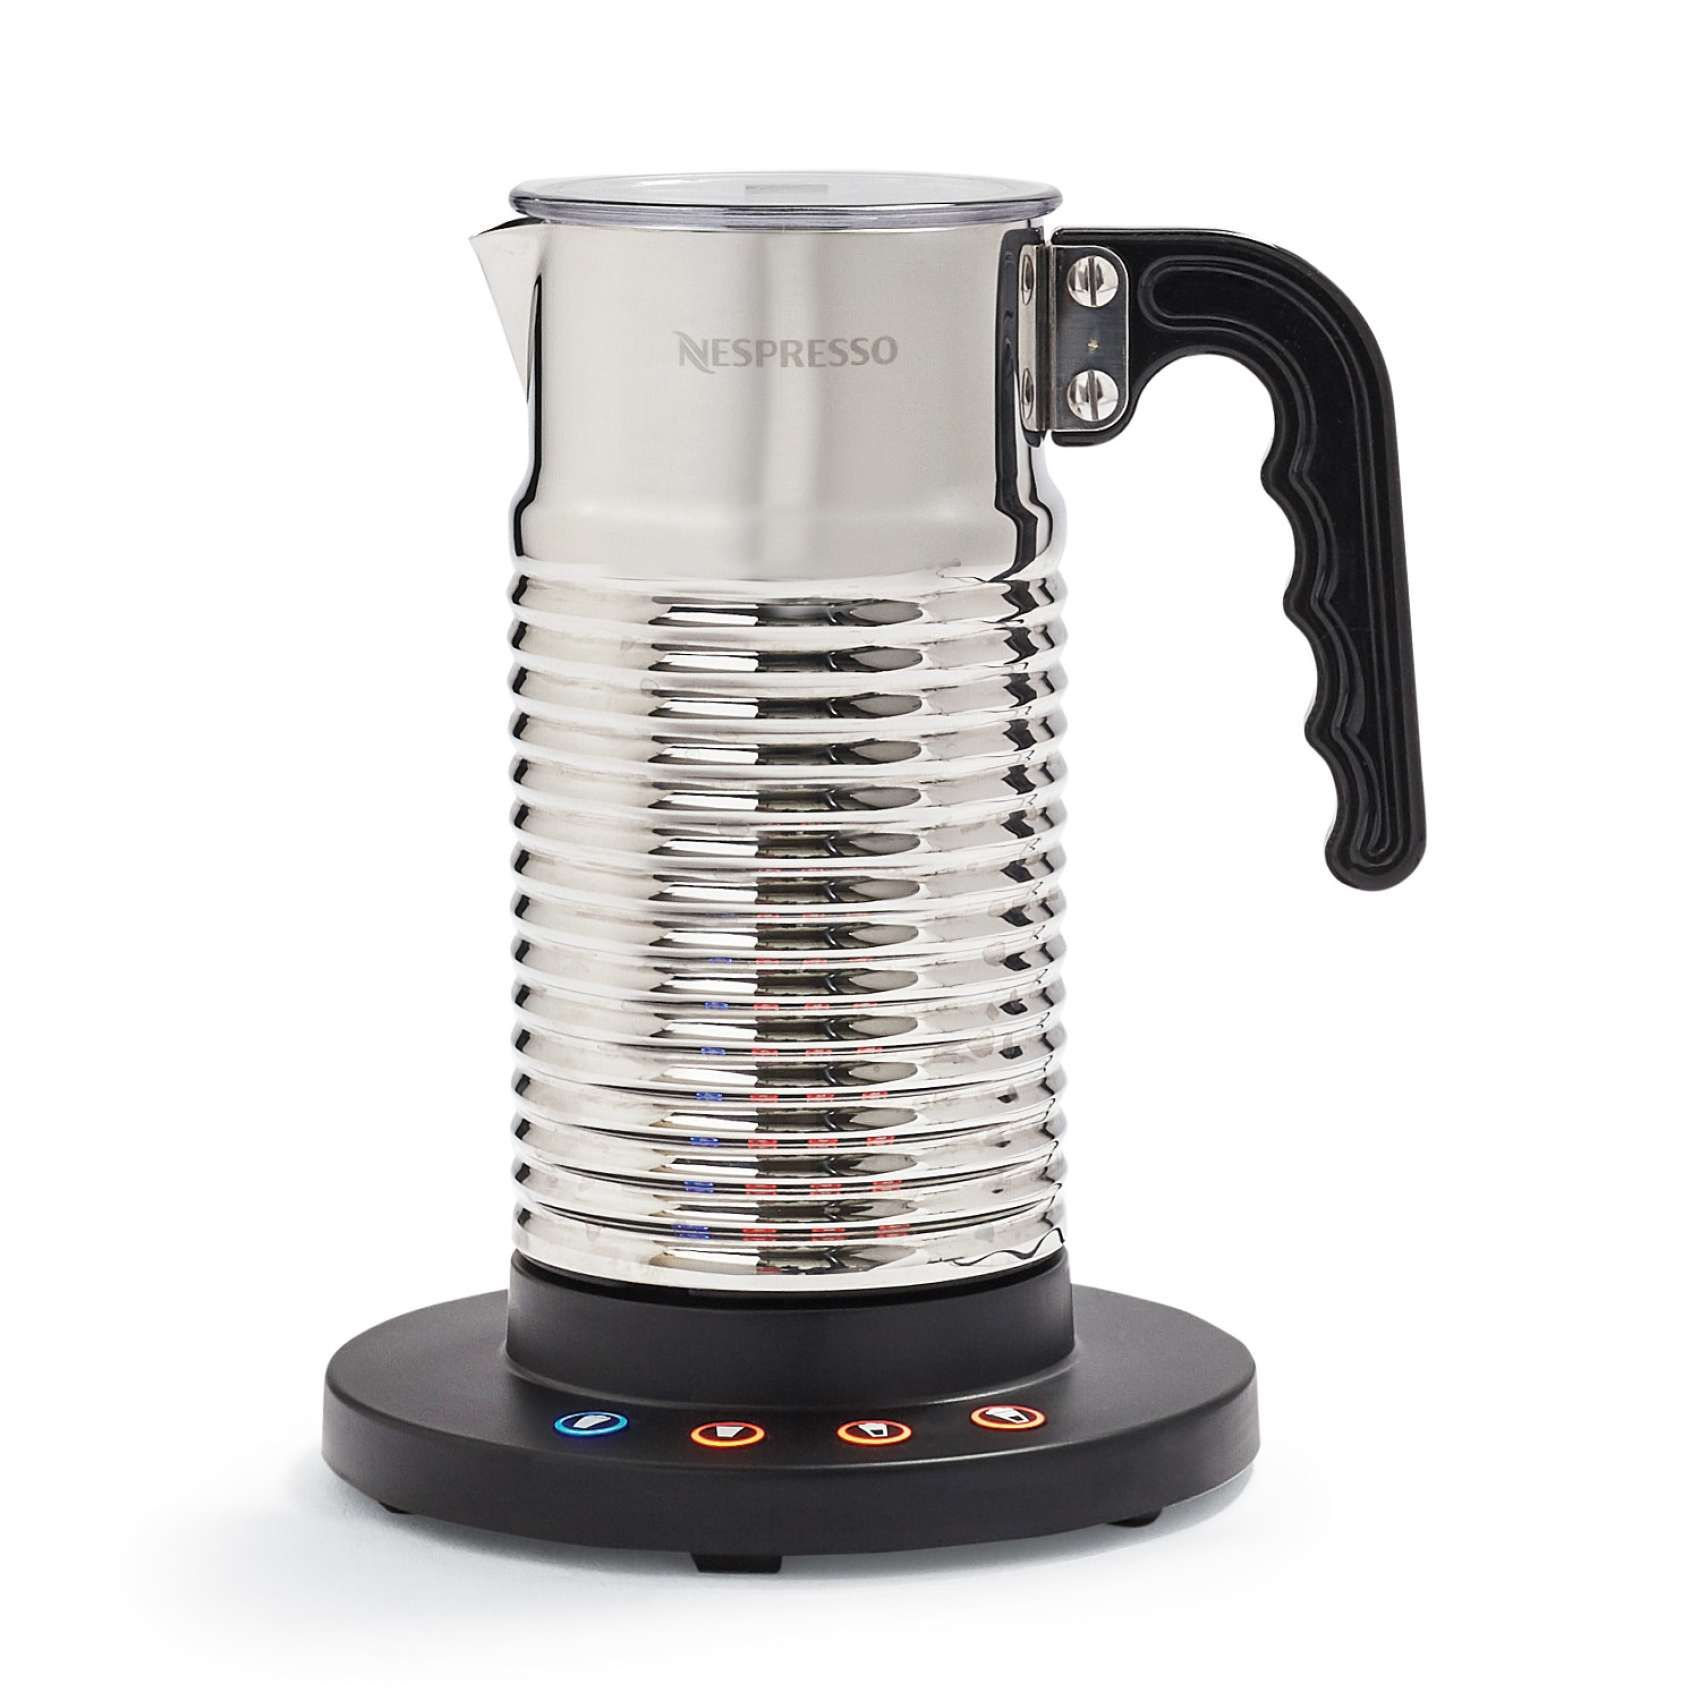 Nespresso Aeroccino 4 Milk Frother Coffee drink recipes